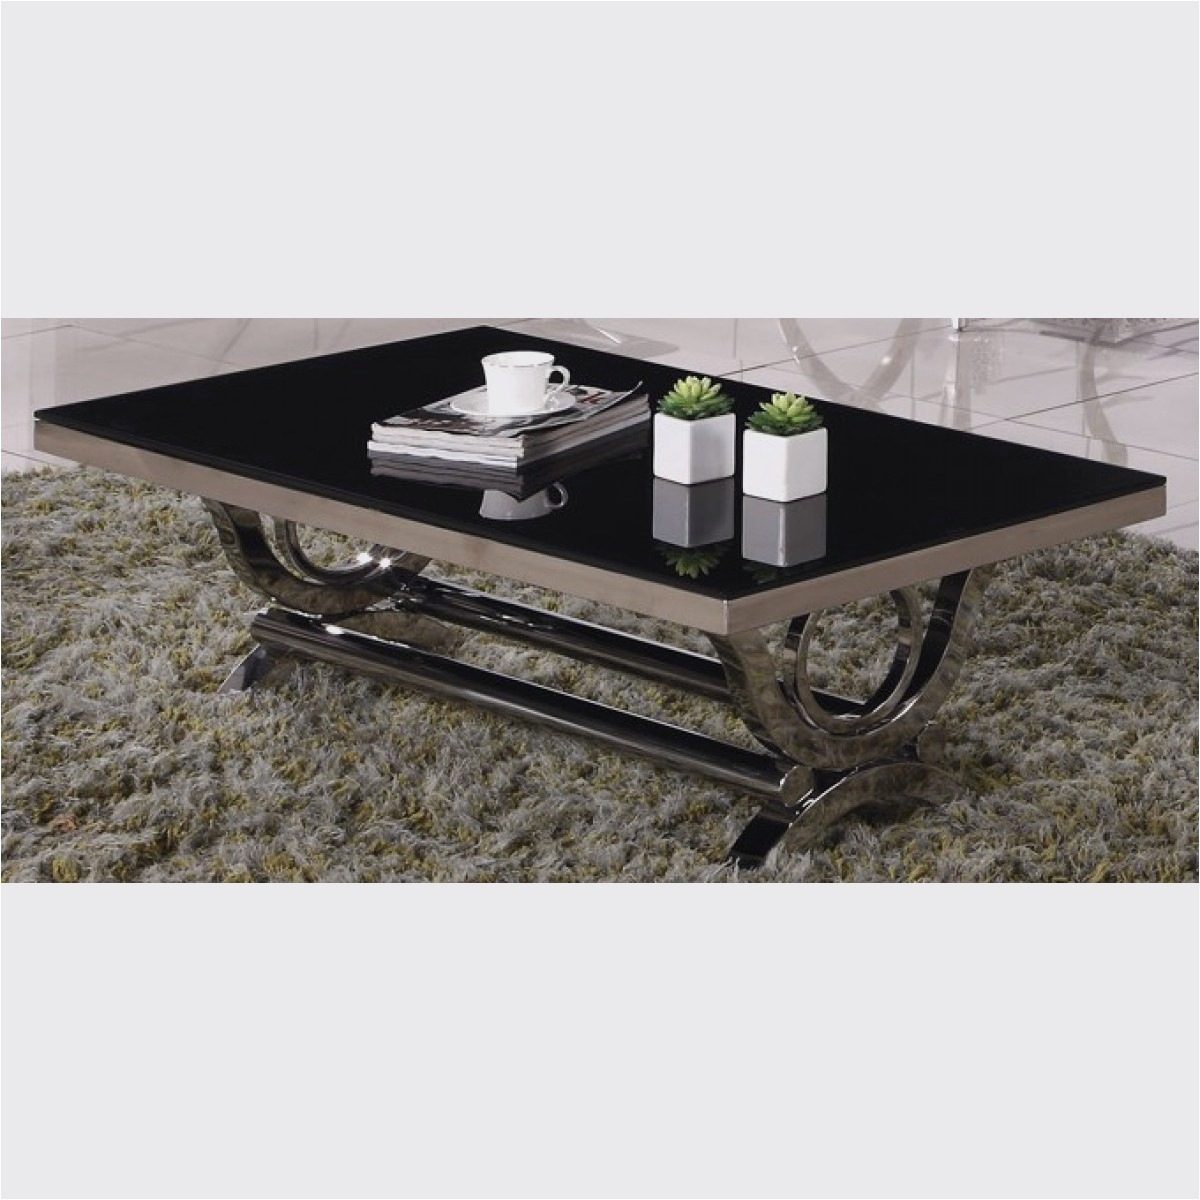 Camif Table Basse Luxe Collection Table Basse Marbre Design Inspirant Table Basse Ronde Marbre